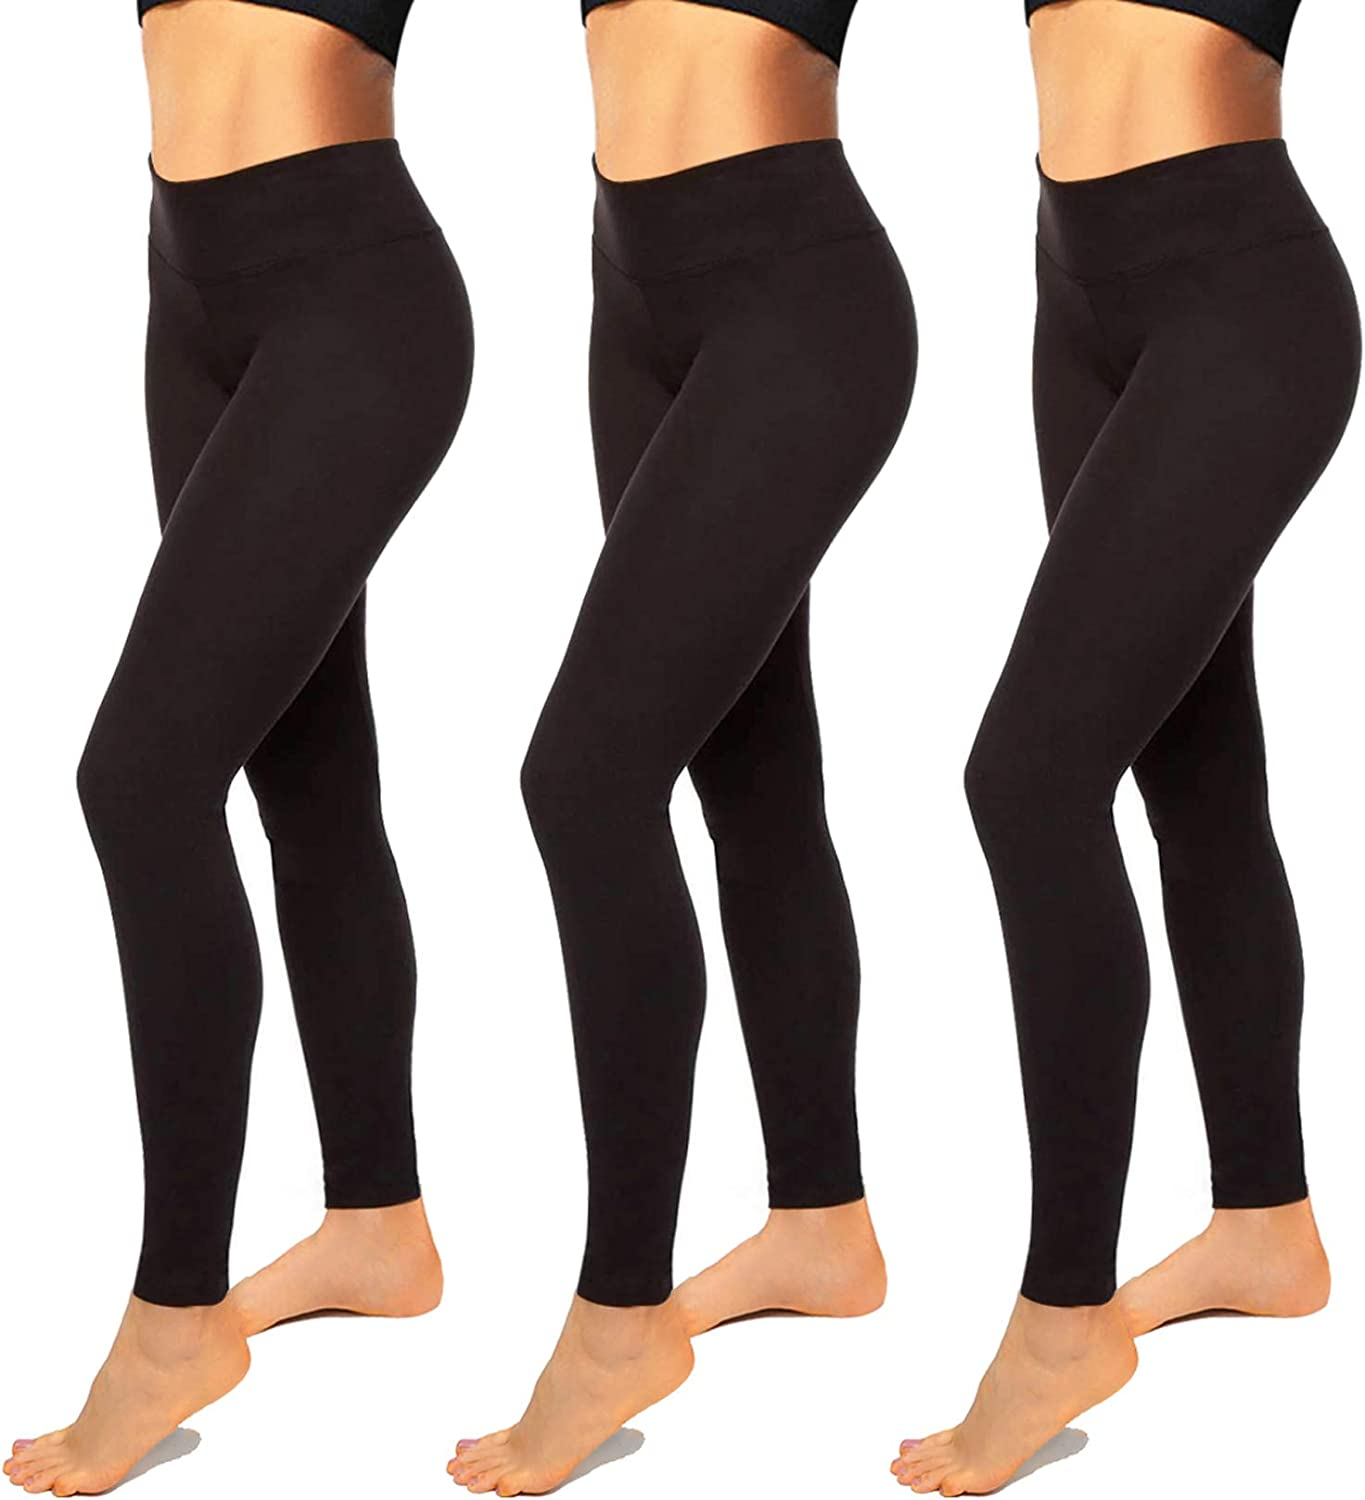 Womens Leggings-High Waisted Black Leggings for Women-Premium Jeggings for Workout, Yoga: Clothing